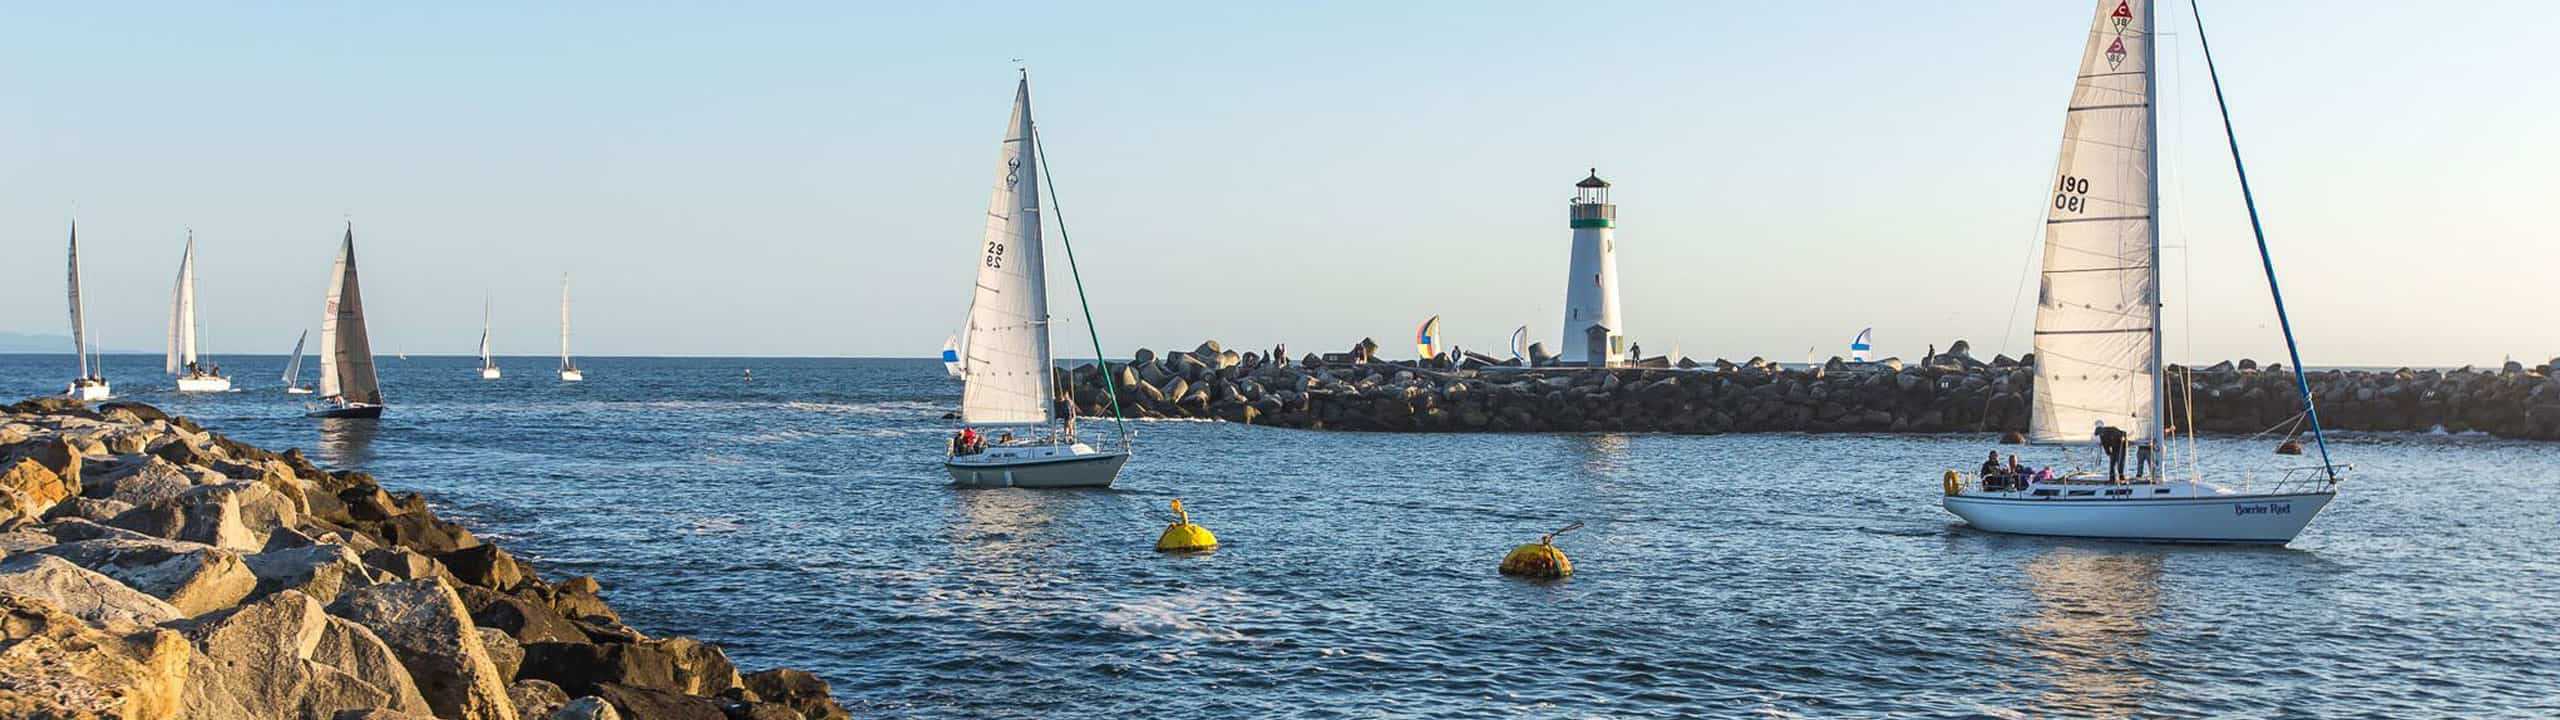 Santa Cruz Harbor uses FiberForce Material in rebuild